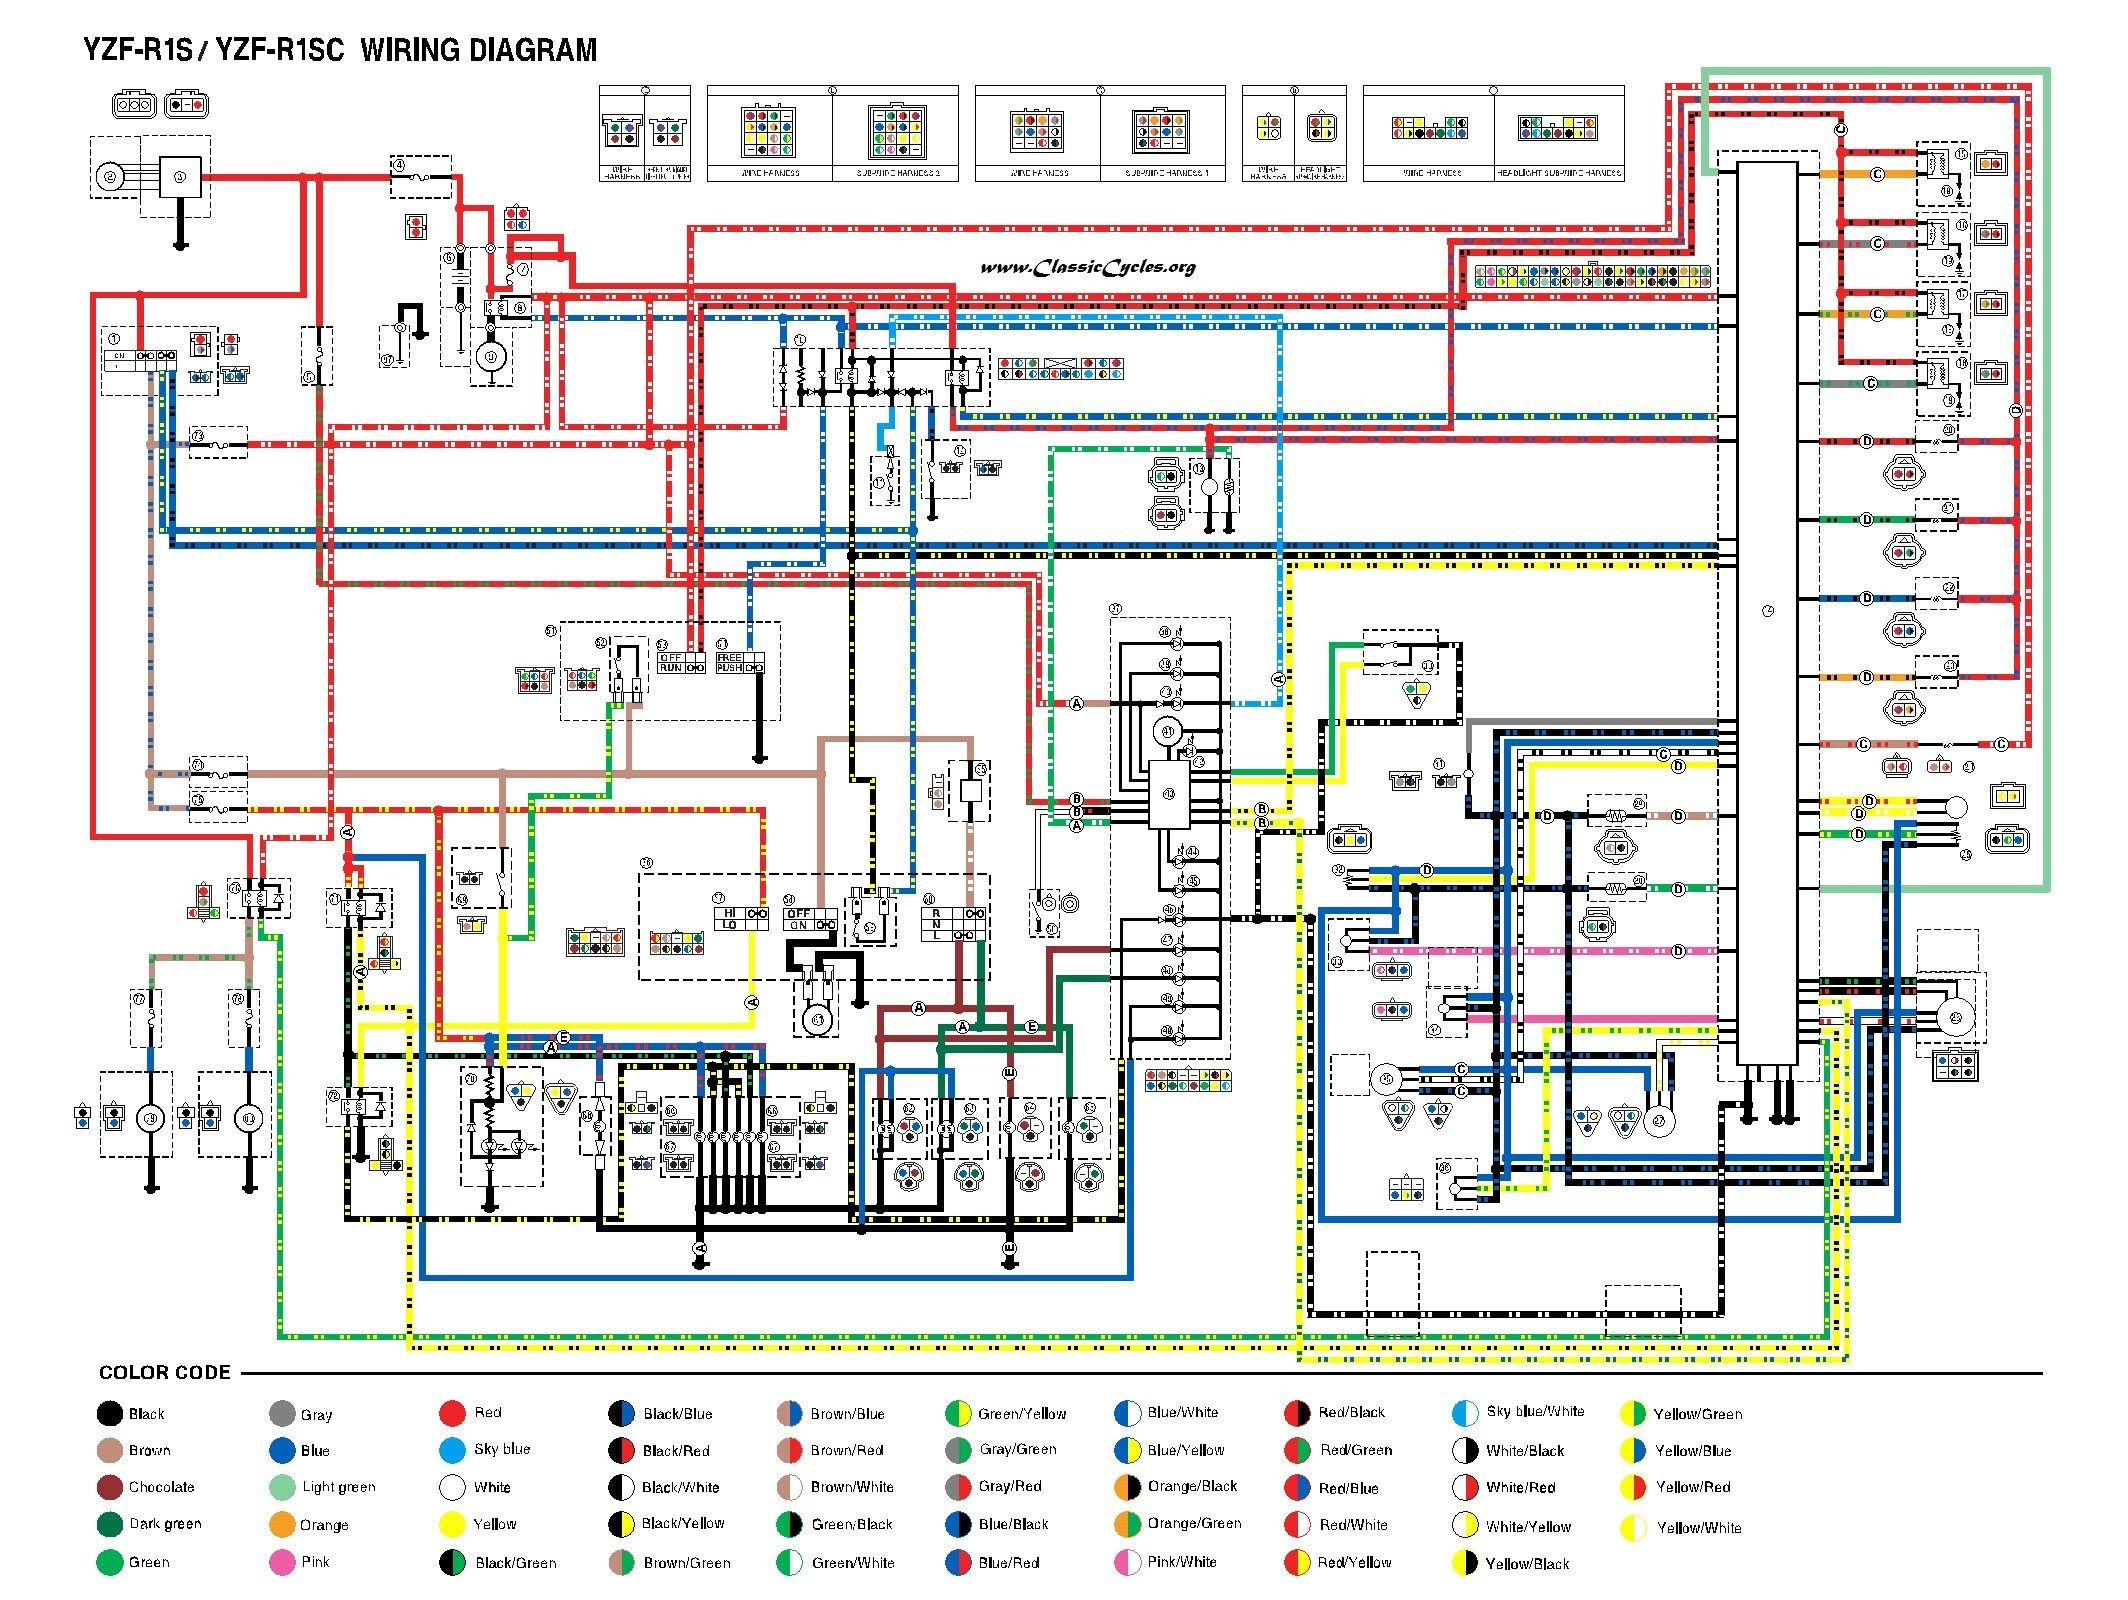 Yamaha Virago 535 Wiring Diagram 1987 Throughout